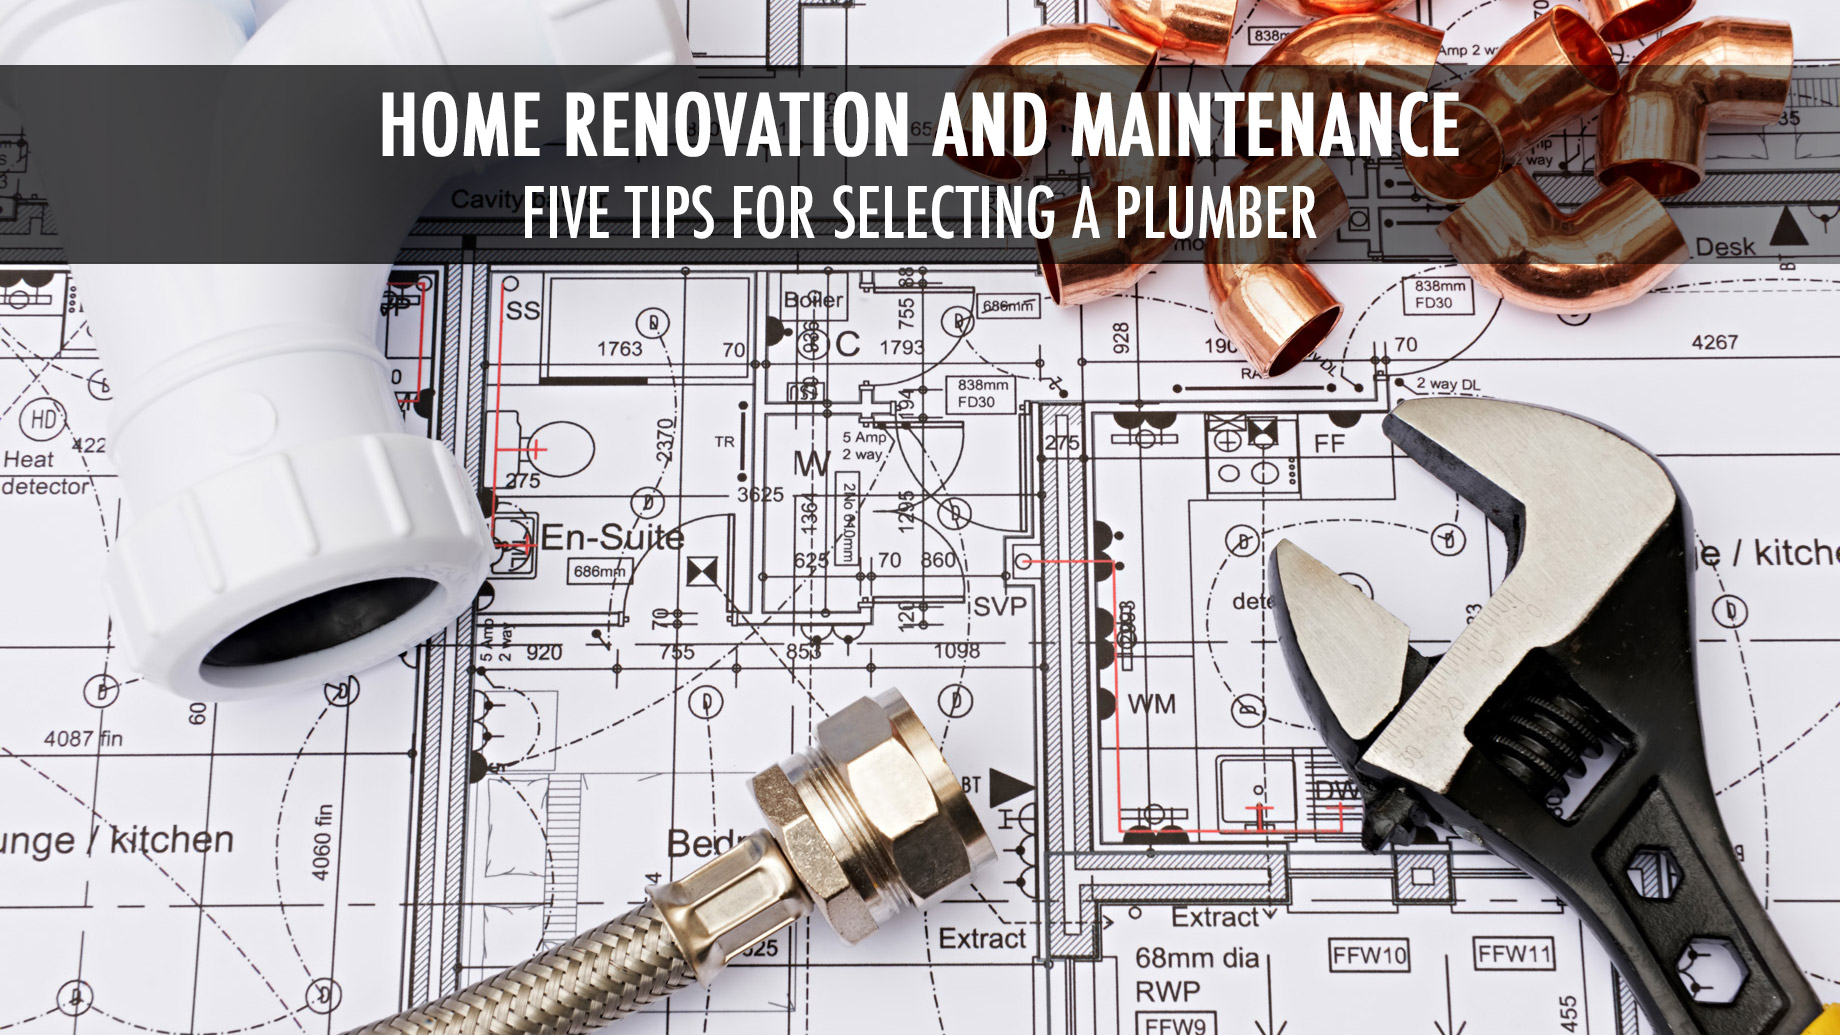 Home Renovation And Maintenance - Five Tips For Selecting A Plumber